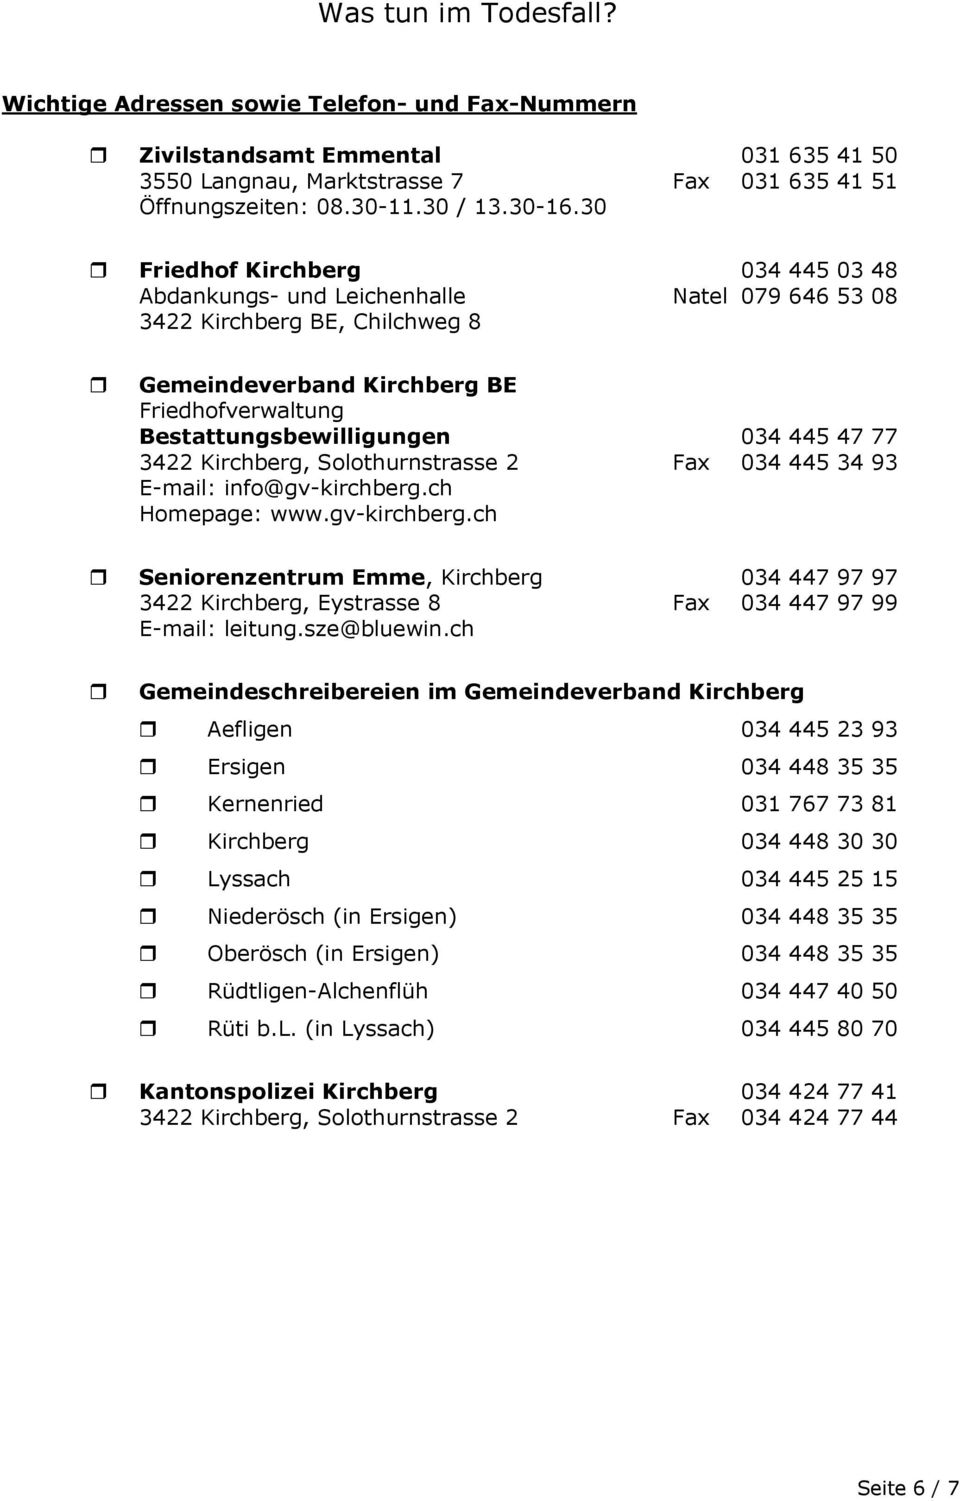 77 3422 Kirchberg, Solothurnstrasse 2 Fax 034 445 34 93 E-mail: info@gv-kirchberg.ch Homepage: www.gv-kirchberg.ch Seniorenzentrum Emme, Kirchberg 034 447 97 97 3422 Kirchberg, Eystrasse 8 Fax 034 447 97 99 E-mail: leitung.